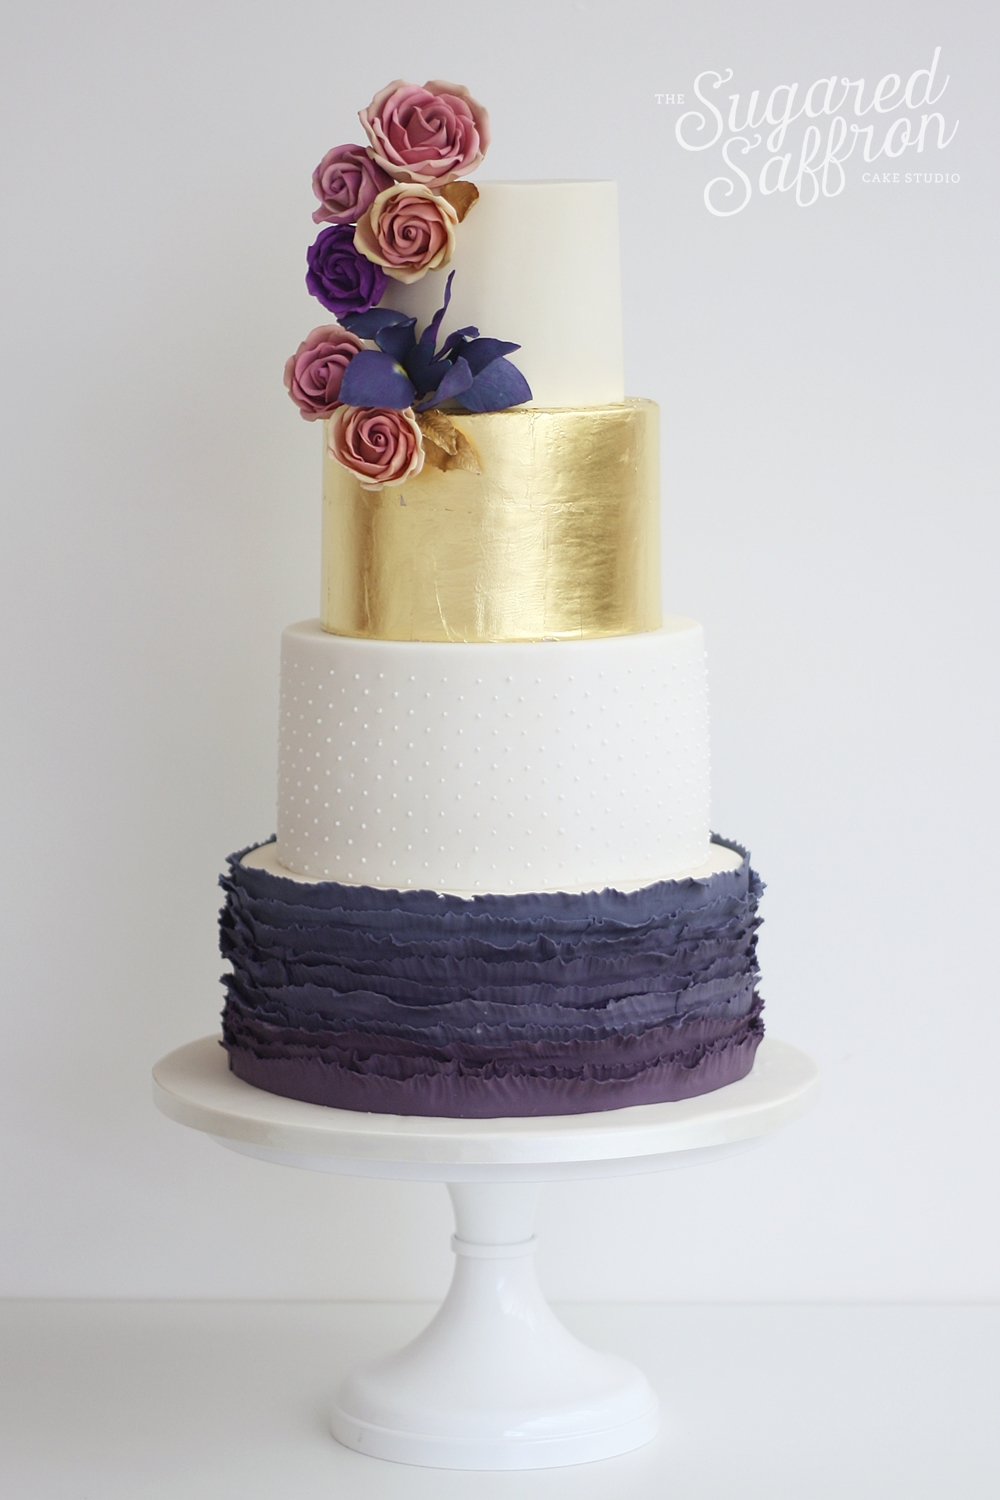 Purple ruffles, gold leaf and sugar amnesia roses and blue iris